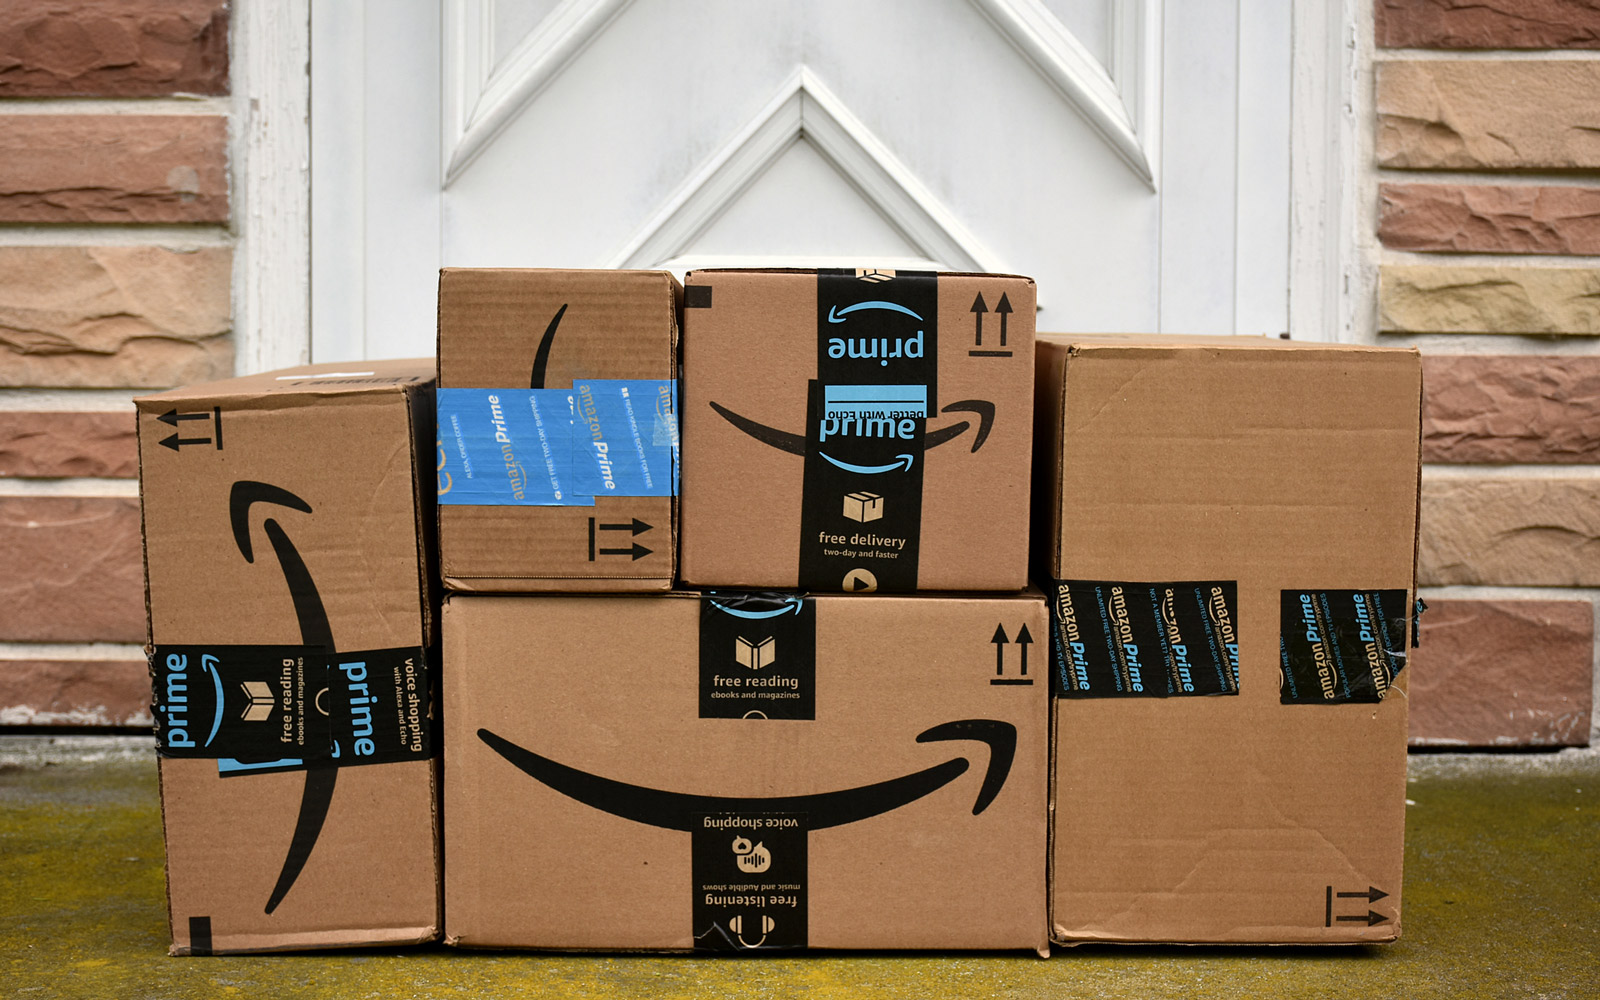 Amazon Is Now Offering Free Same-day Shipping for Prime Members